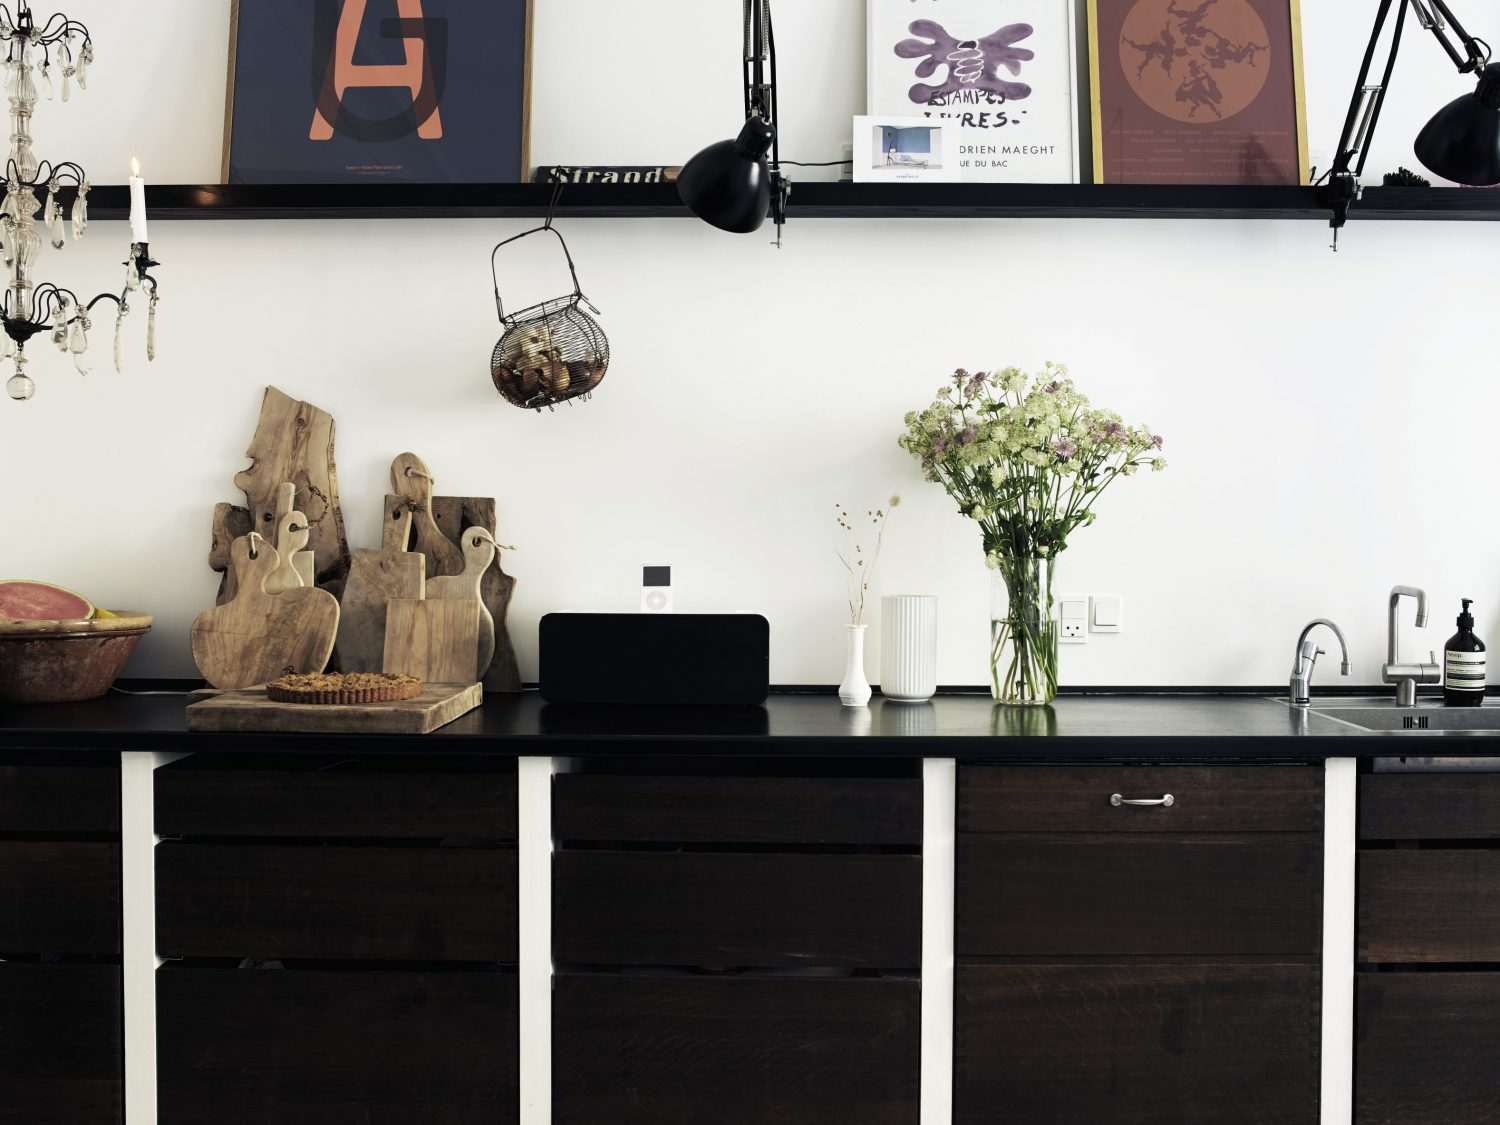 In the kitchen, dark wood cabinets run along one wall and there are no wall cabinets. Instead, a long black shelf is used as an opportunity to display pictutes and objects. A group of olive wood chopping boards on the work surface add a welcome organic touch.